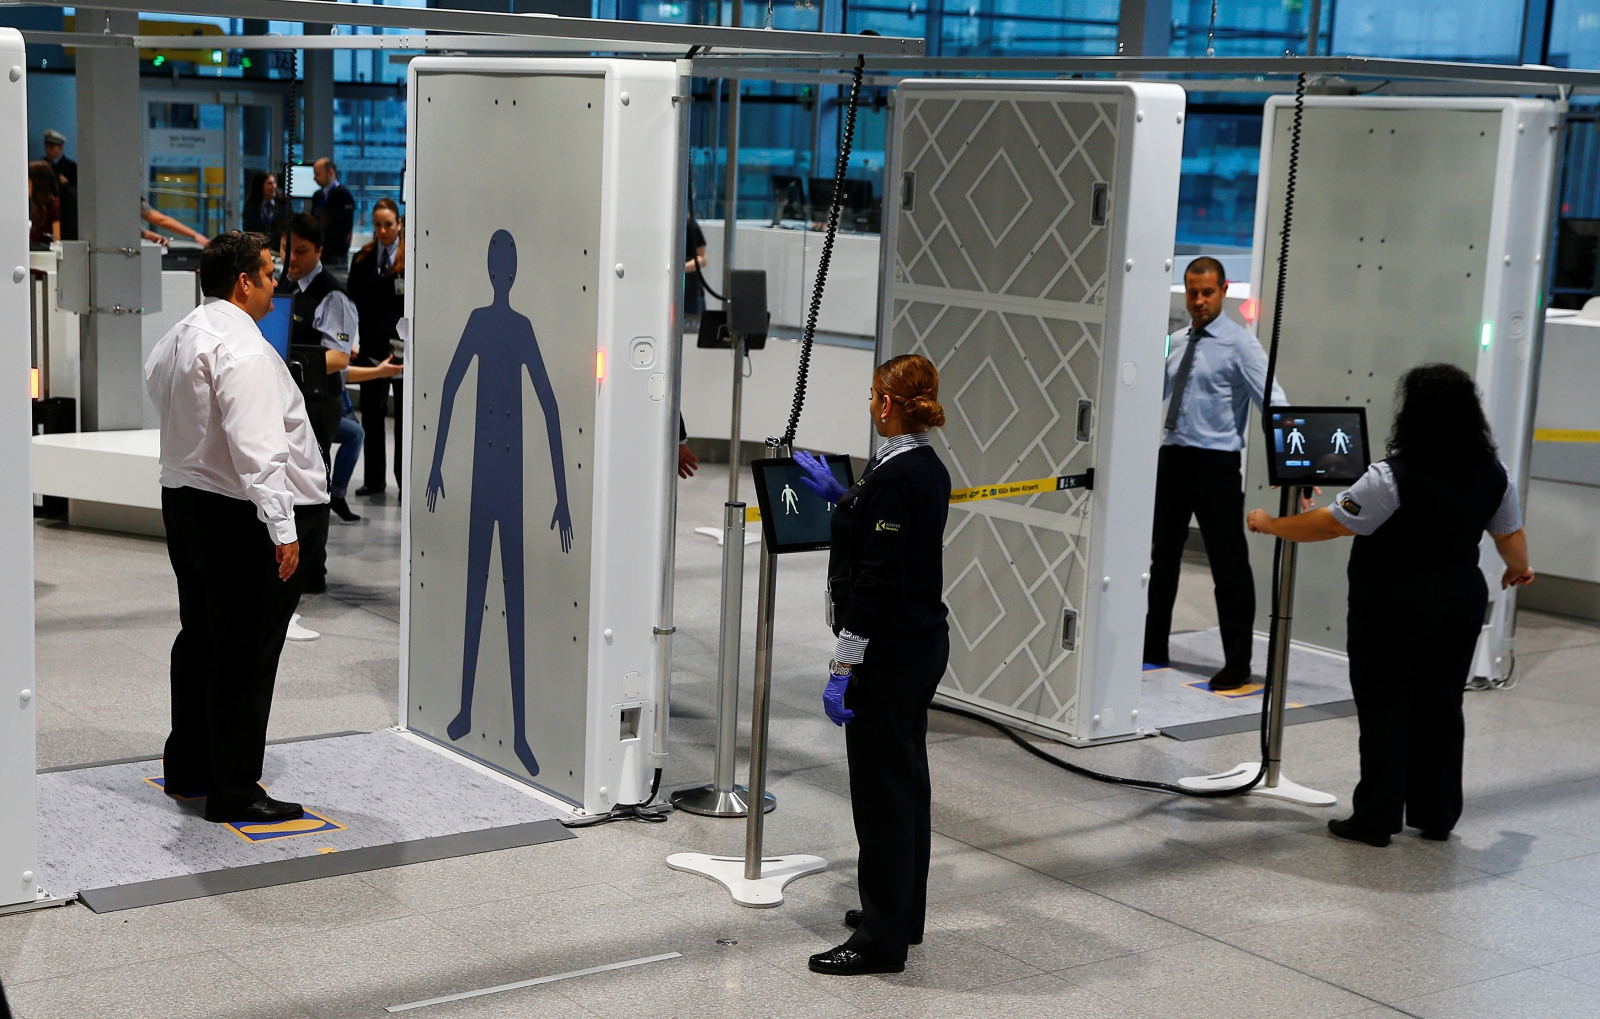 full-body scanners